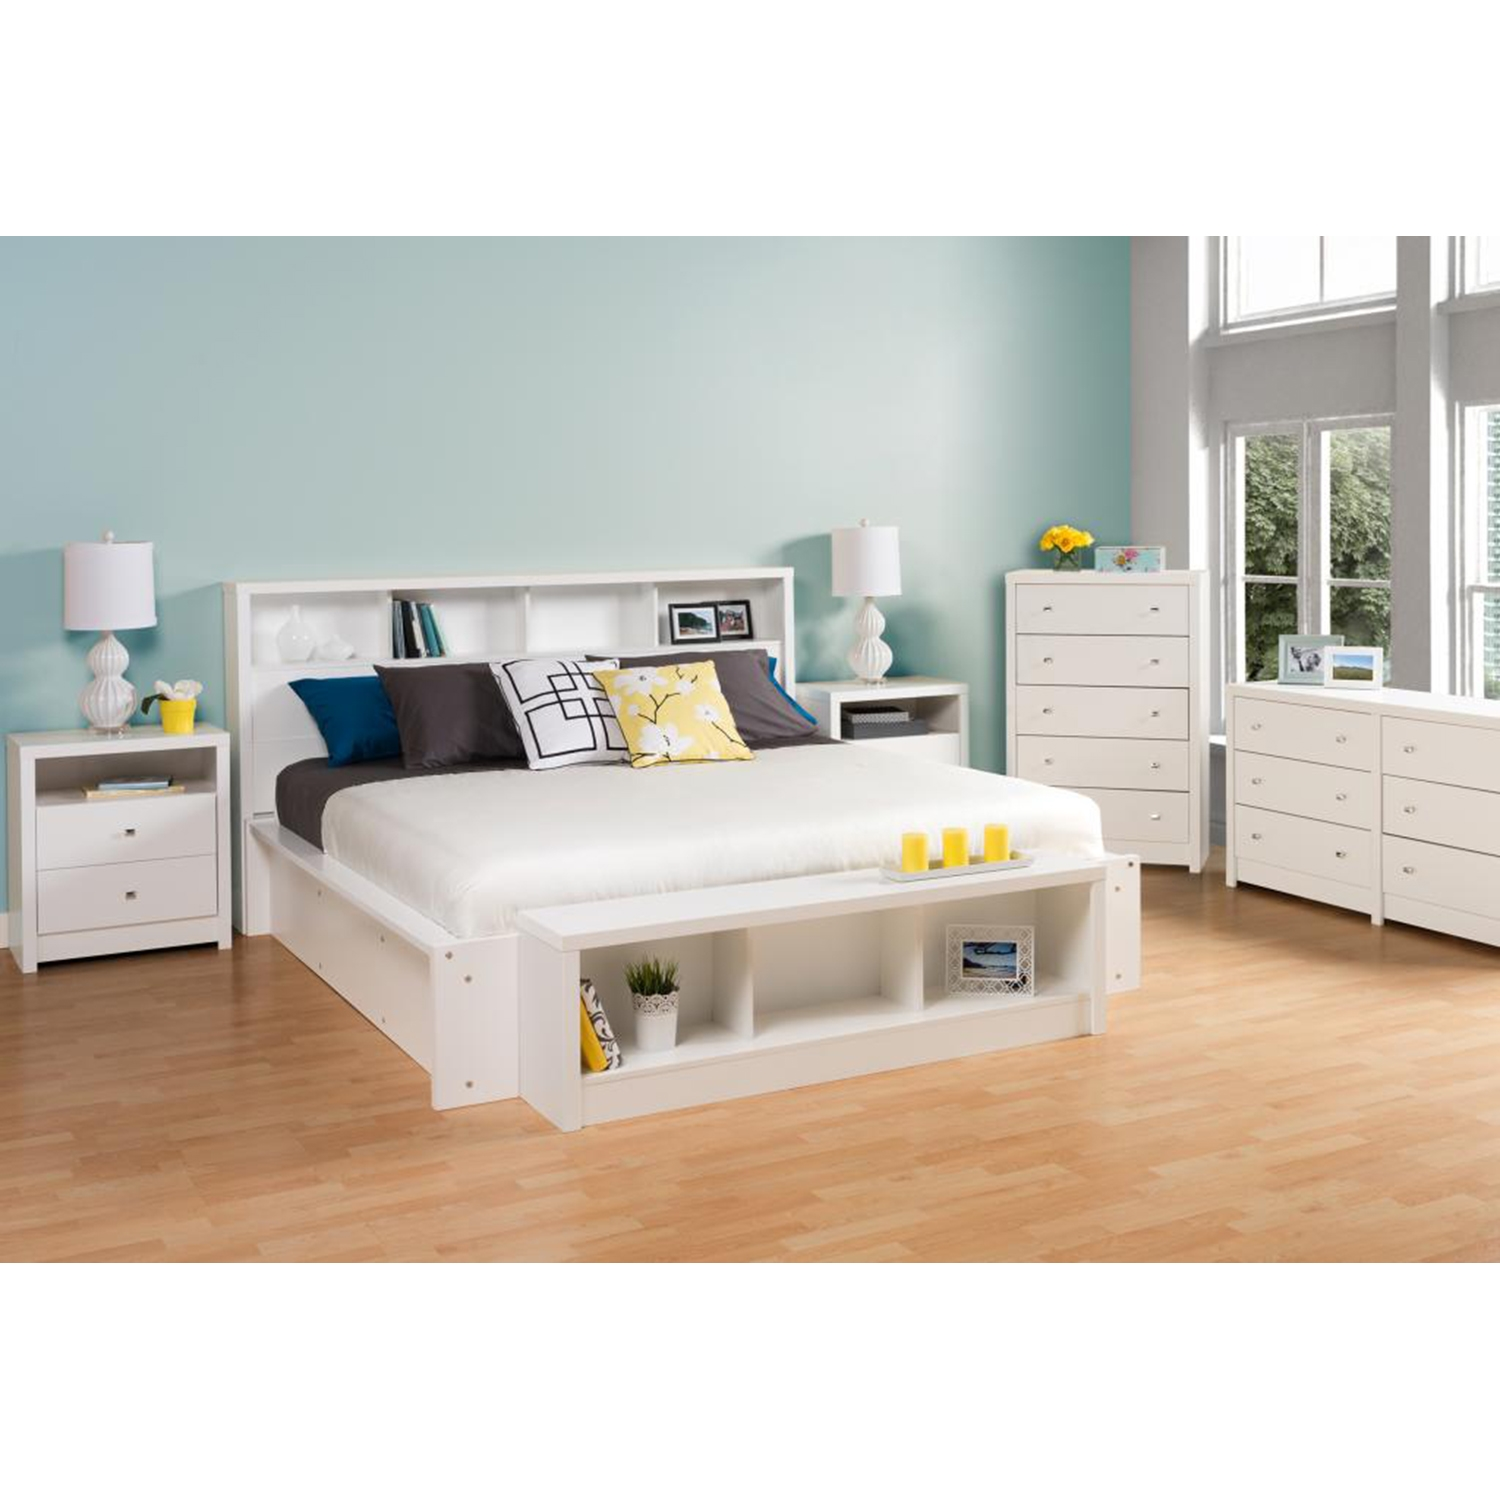 Calla King Headboard - Pure White - PRE-WHFK-0500-1